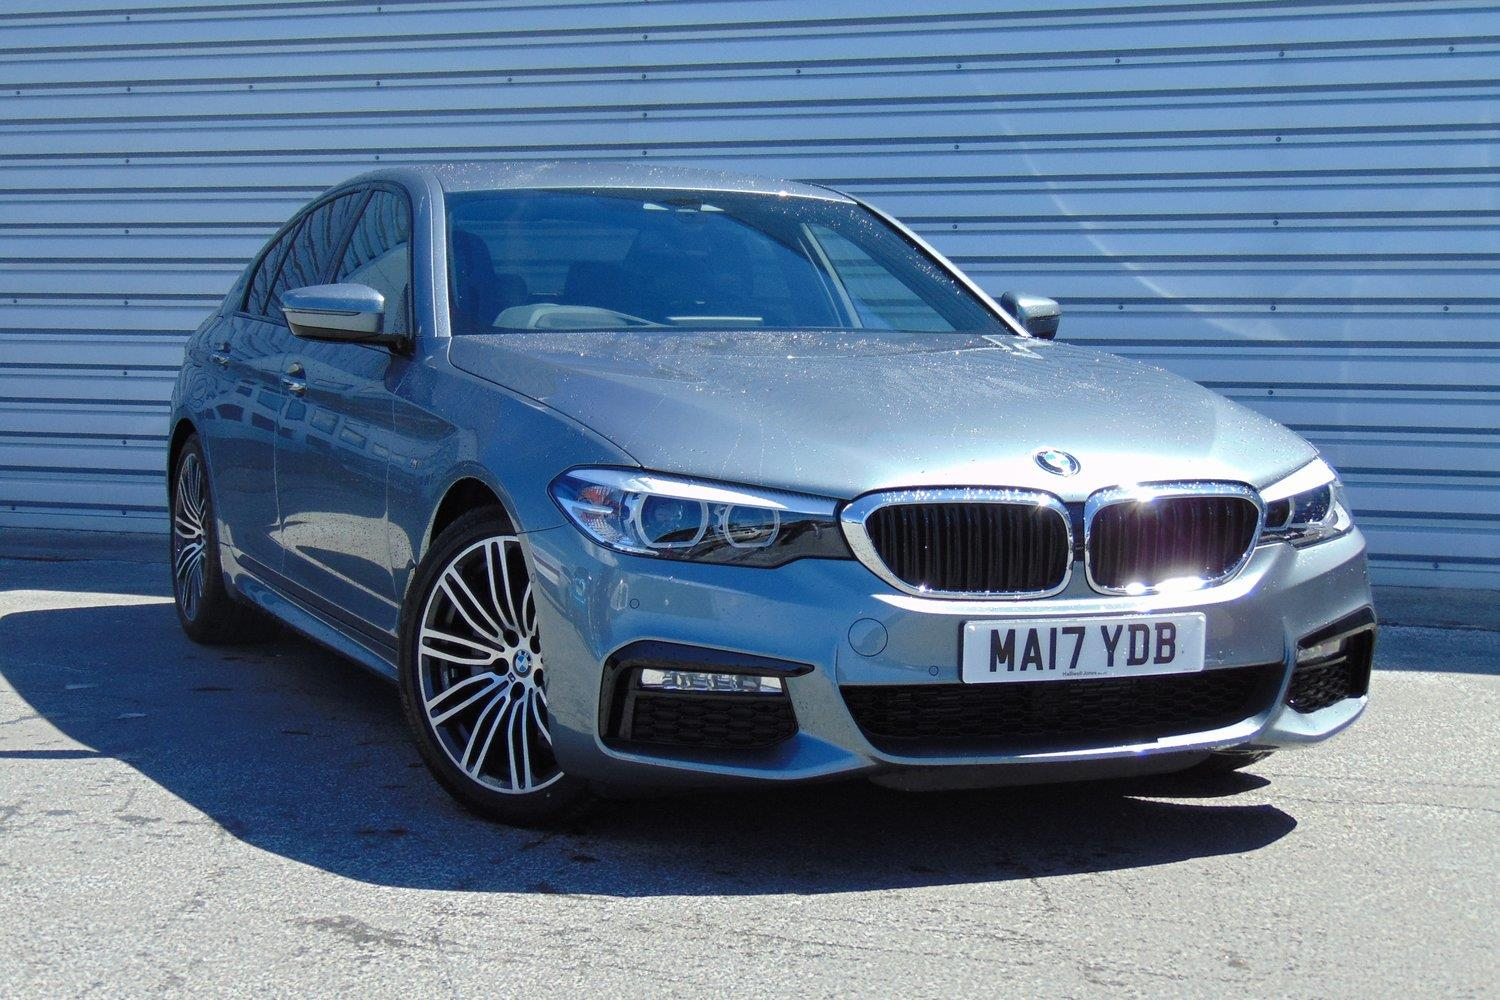 BMW 5 Series Saloon MA17YDB - Image 10